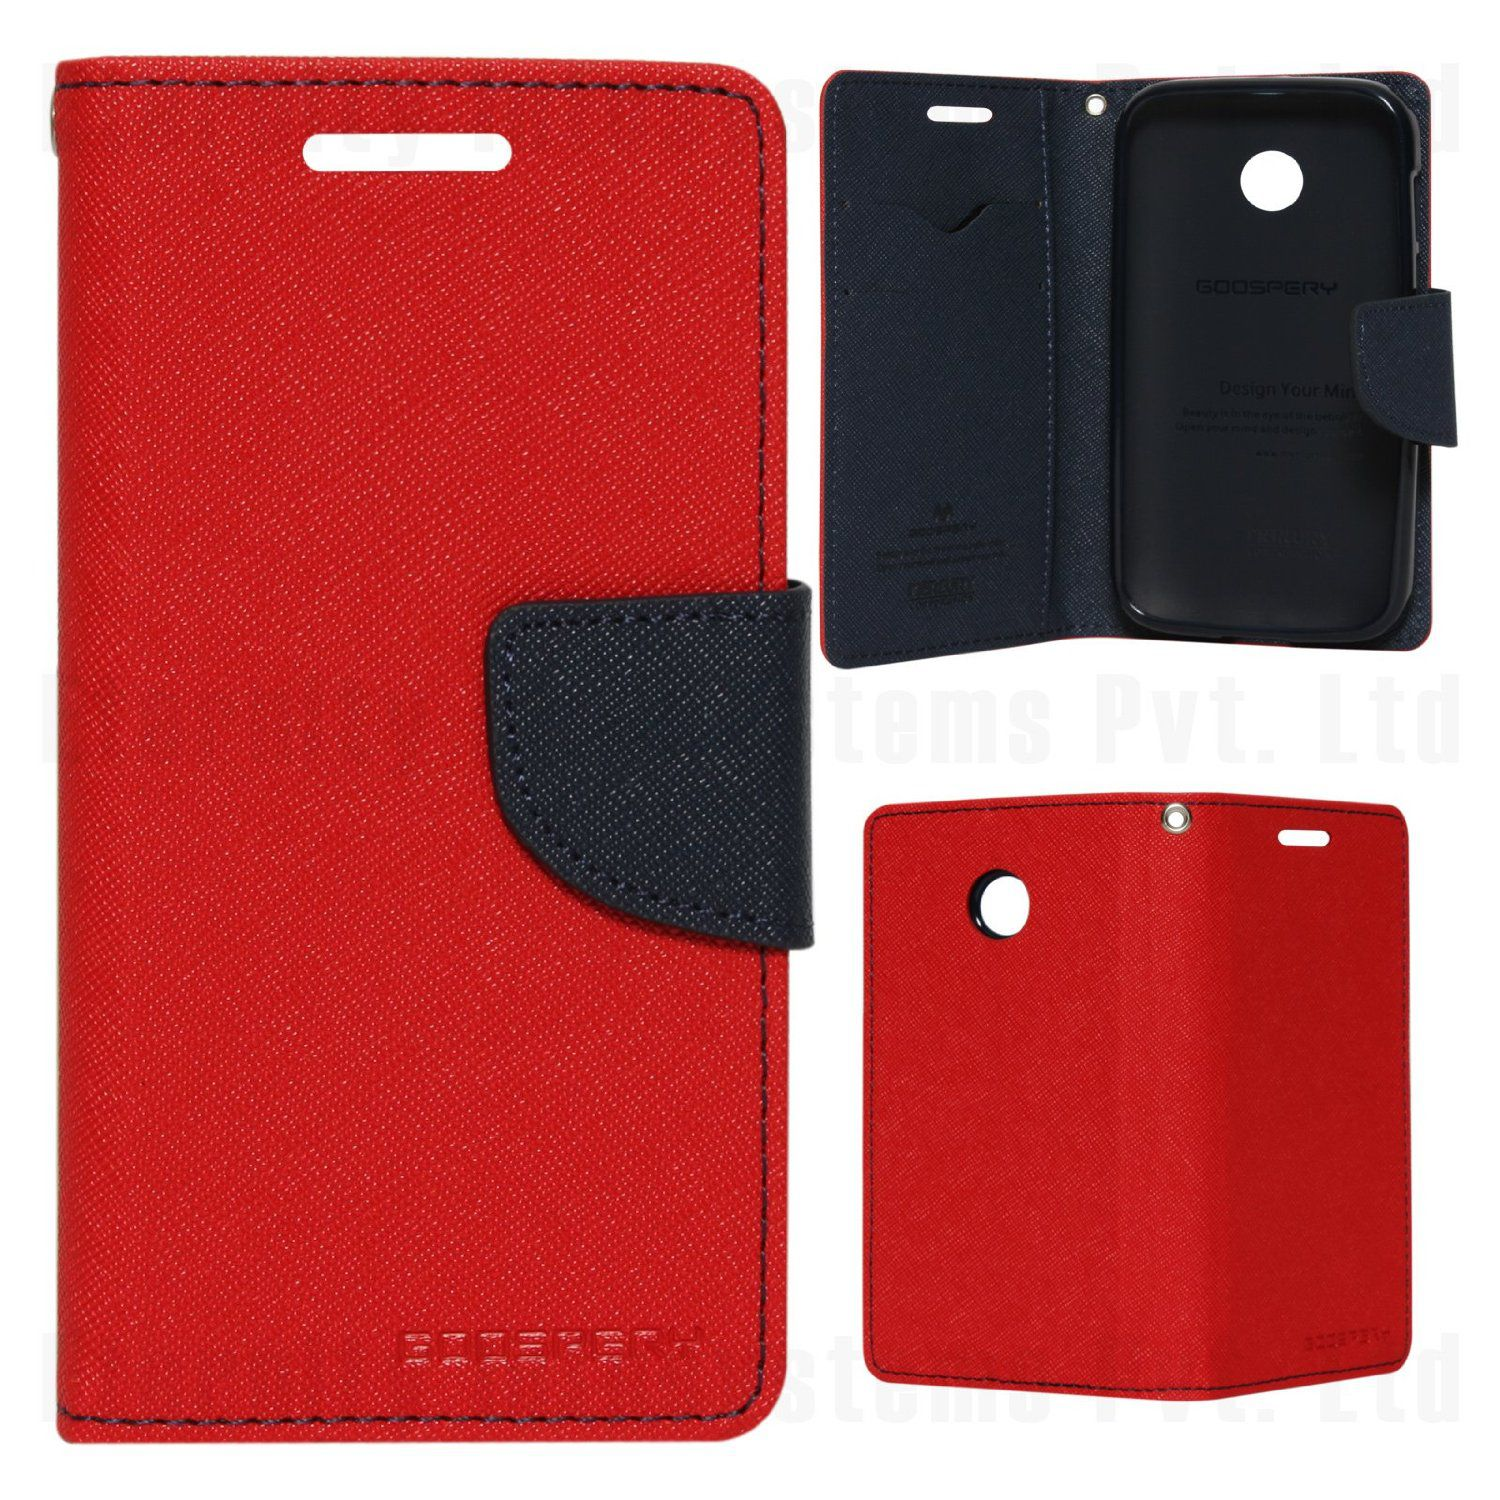 the latest 2e55b a7325 Samsung Galaxy j2 Flip Cover by Kshiv Enterprises - Red - Flip ...